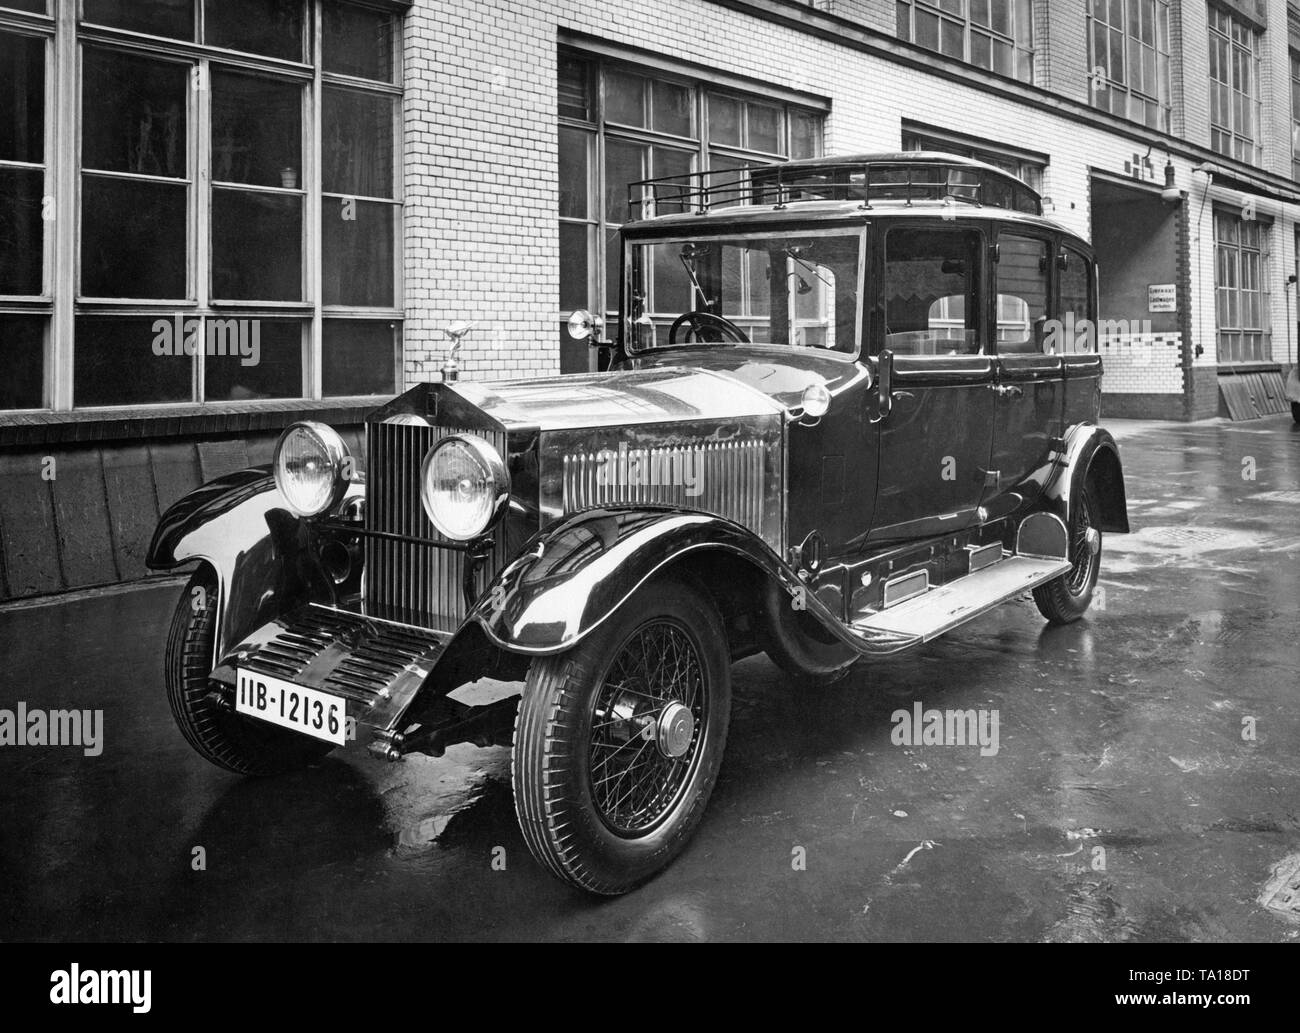 A Rolls Royce Phantom I parks on the roadside. The 'IIB' symbol stands for registration in Oberbayern. - Stock Image